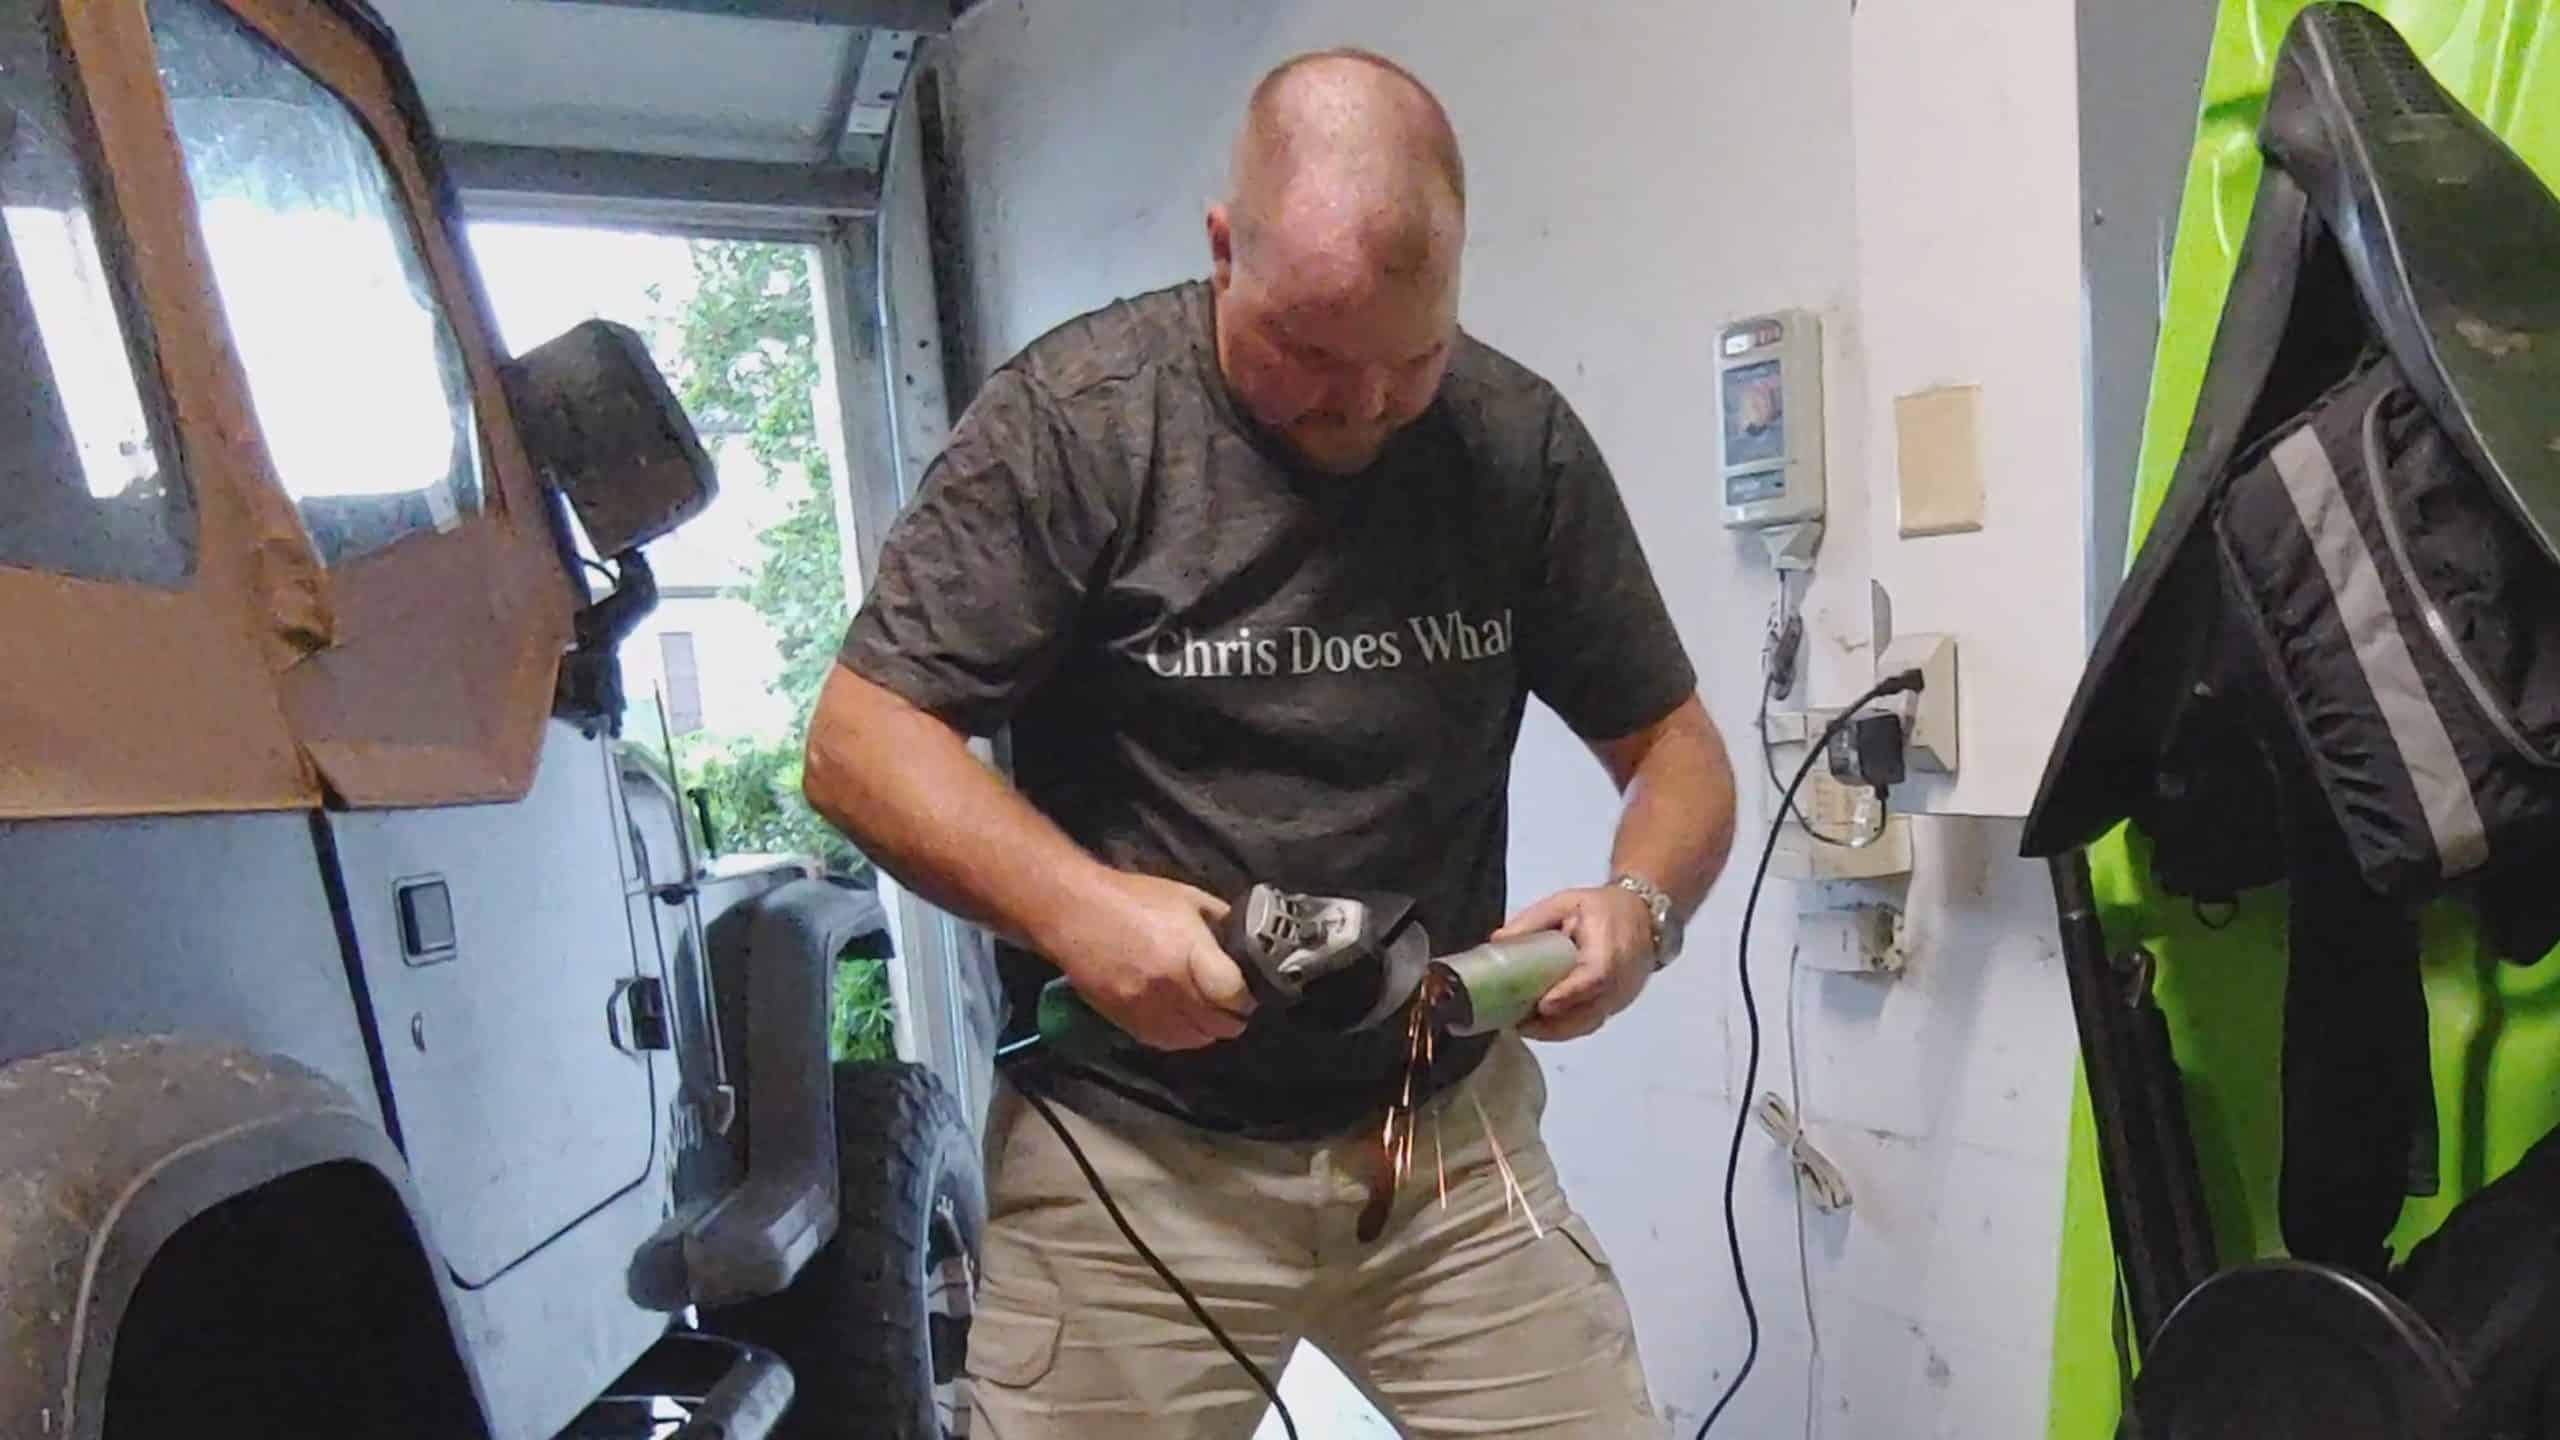 Cutting Pipe For Total Flow Muffler - Chris Does What